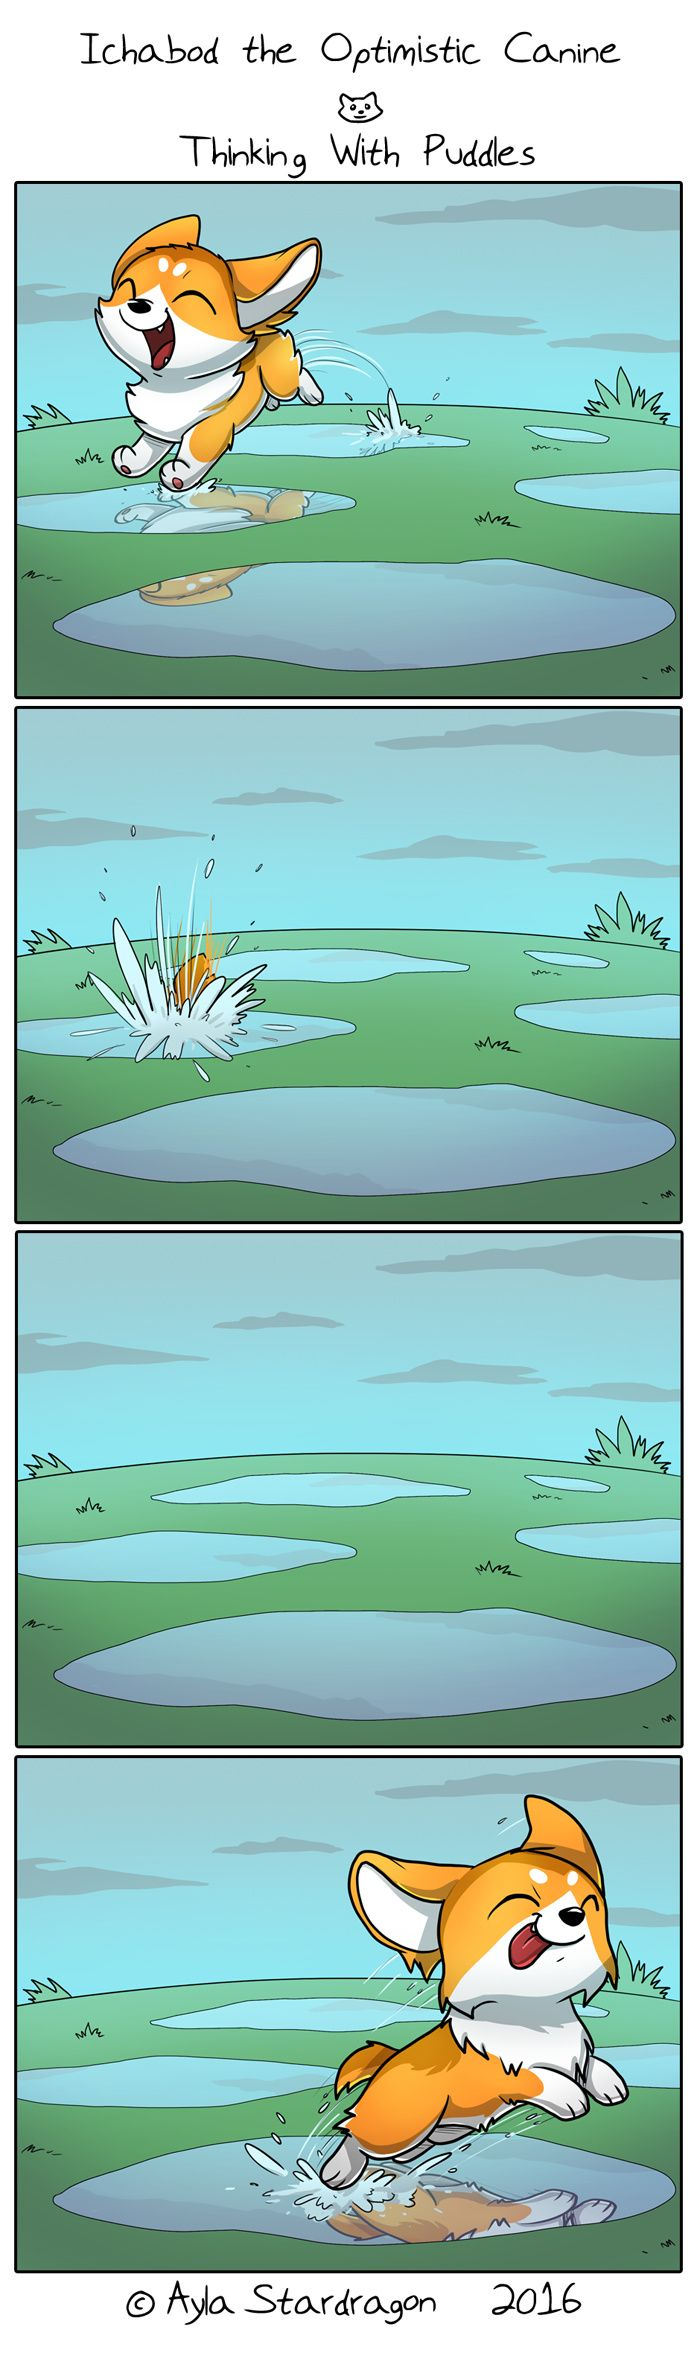 Ichabod the Optimistic Canine :: Thinking With Puddles | Tapastic Comics - image 1